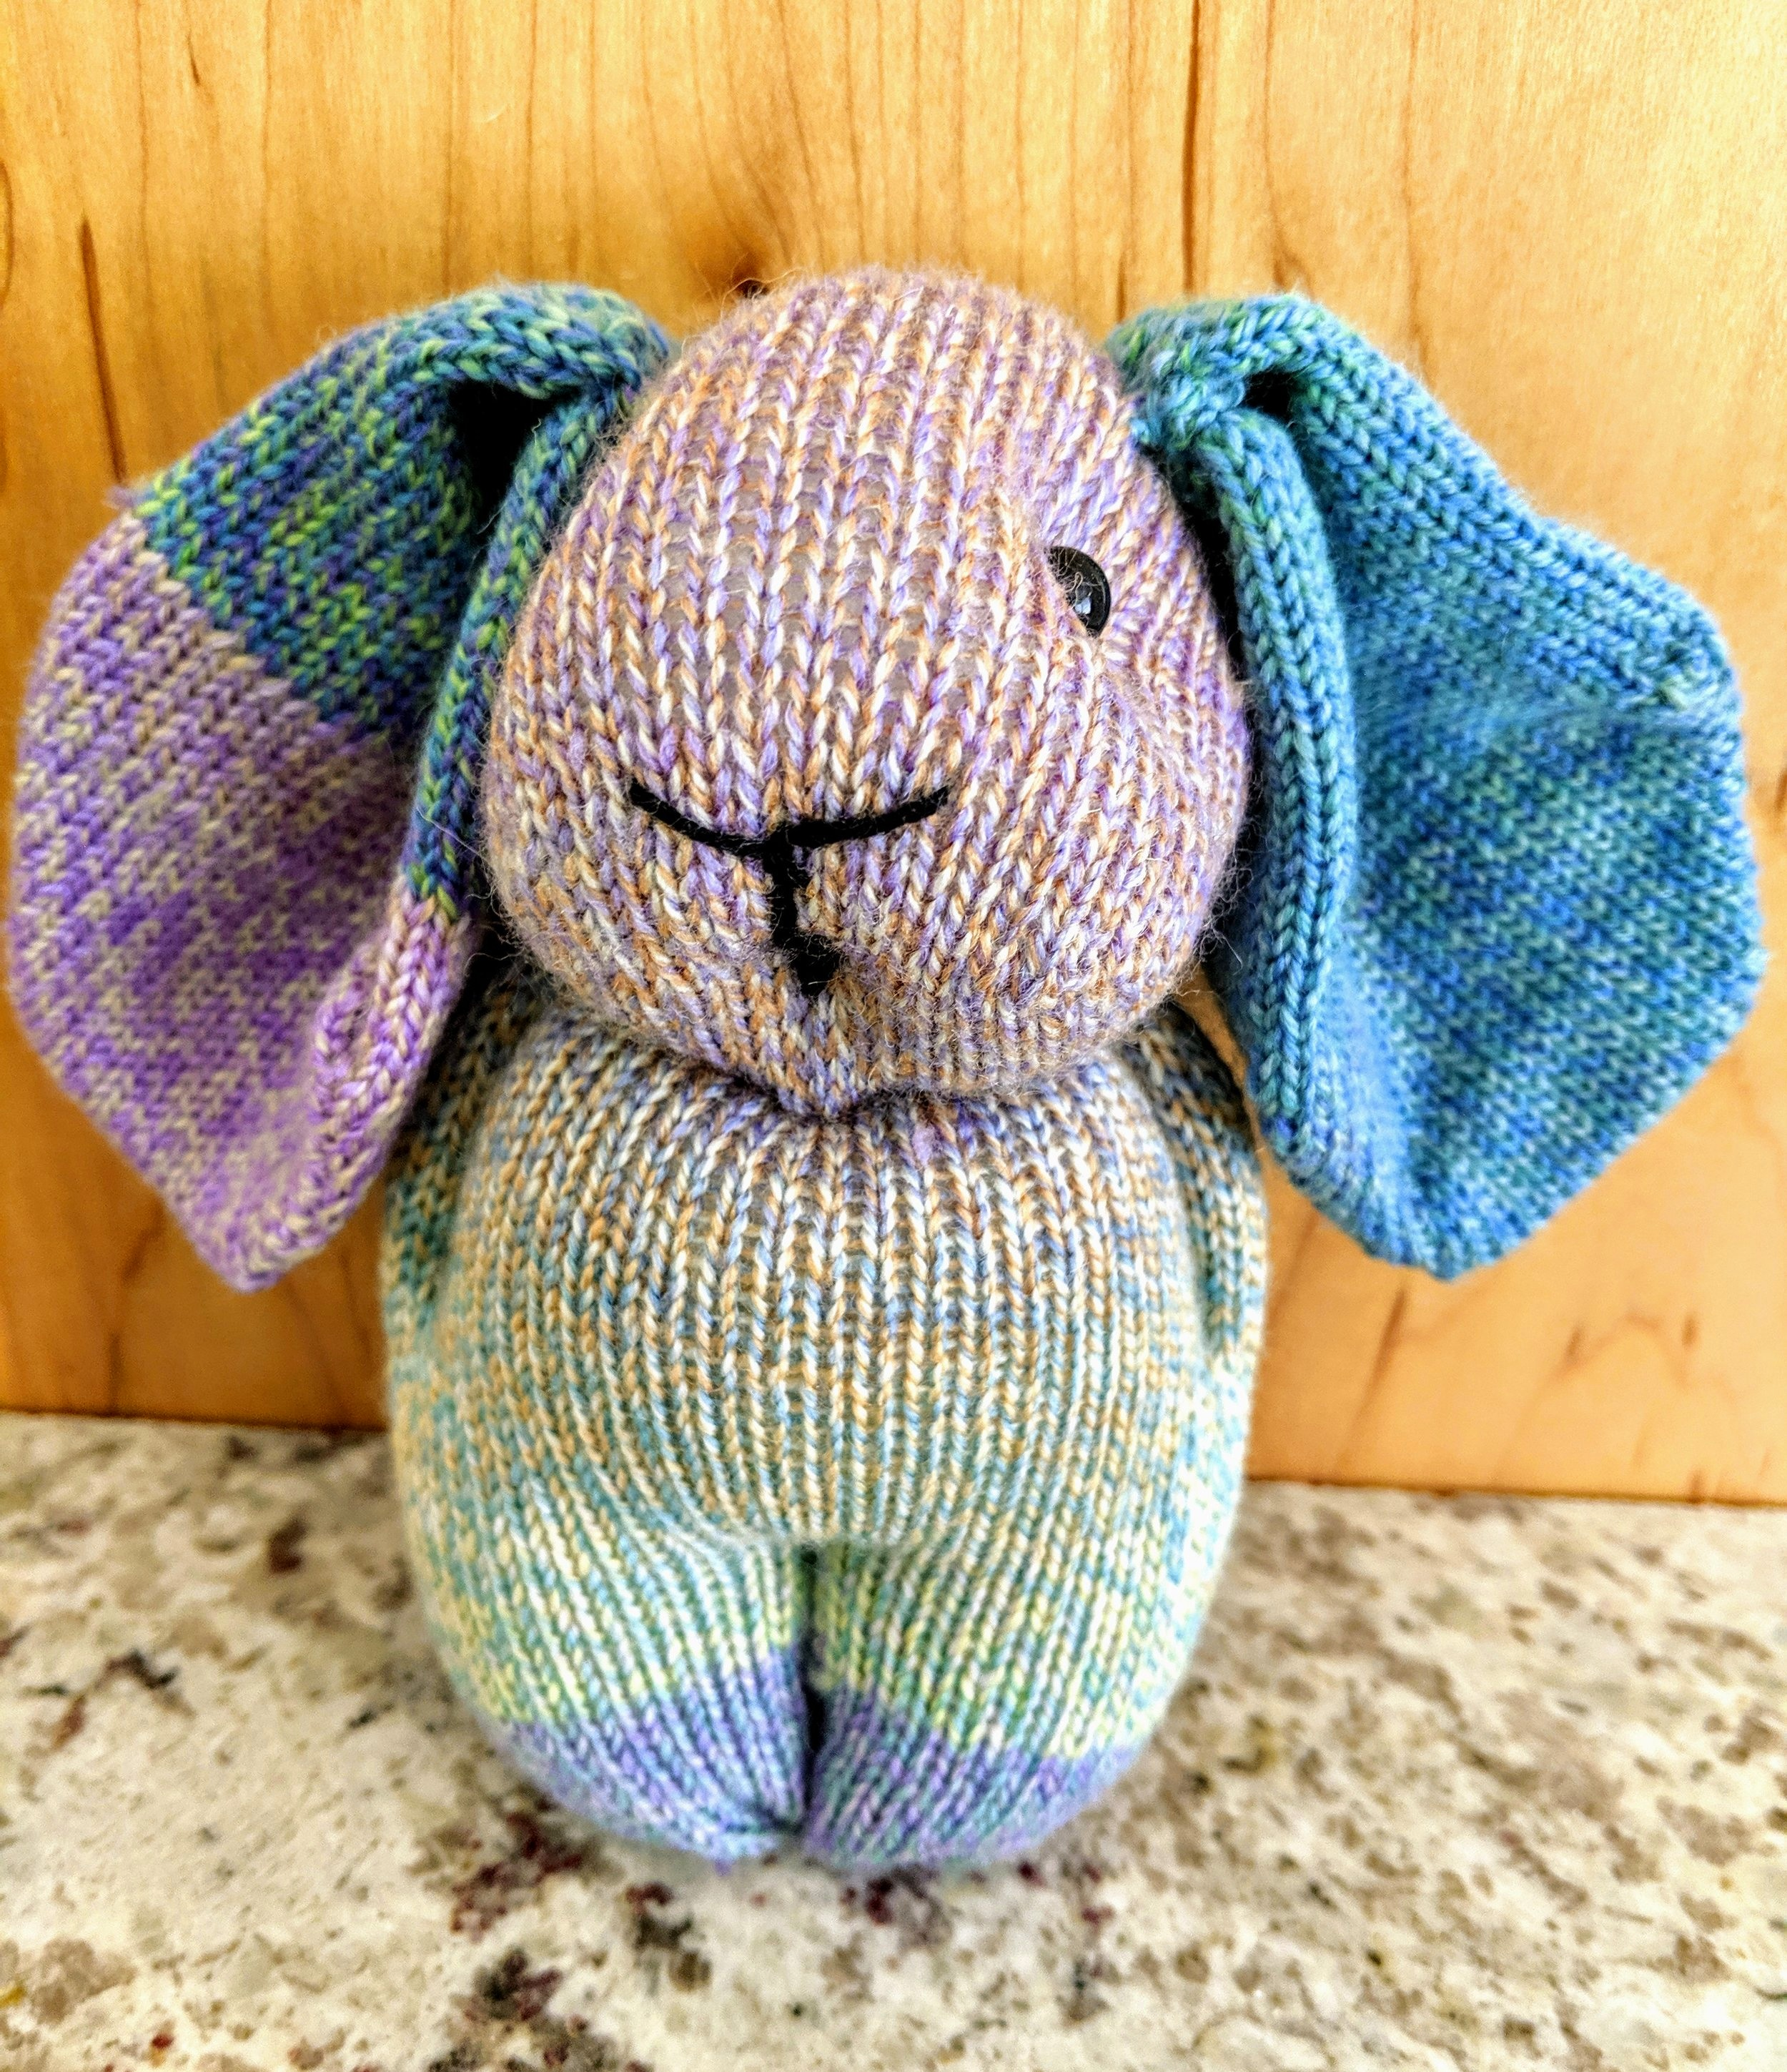 Sock machine bunny; wool and nylon